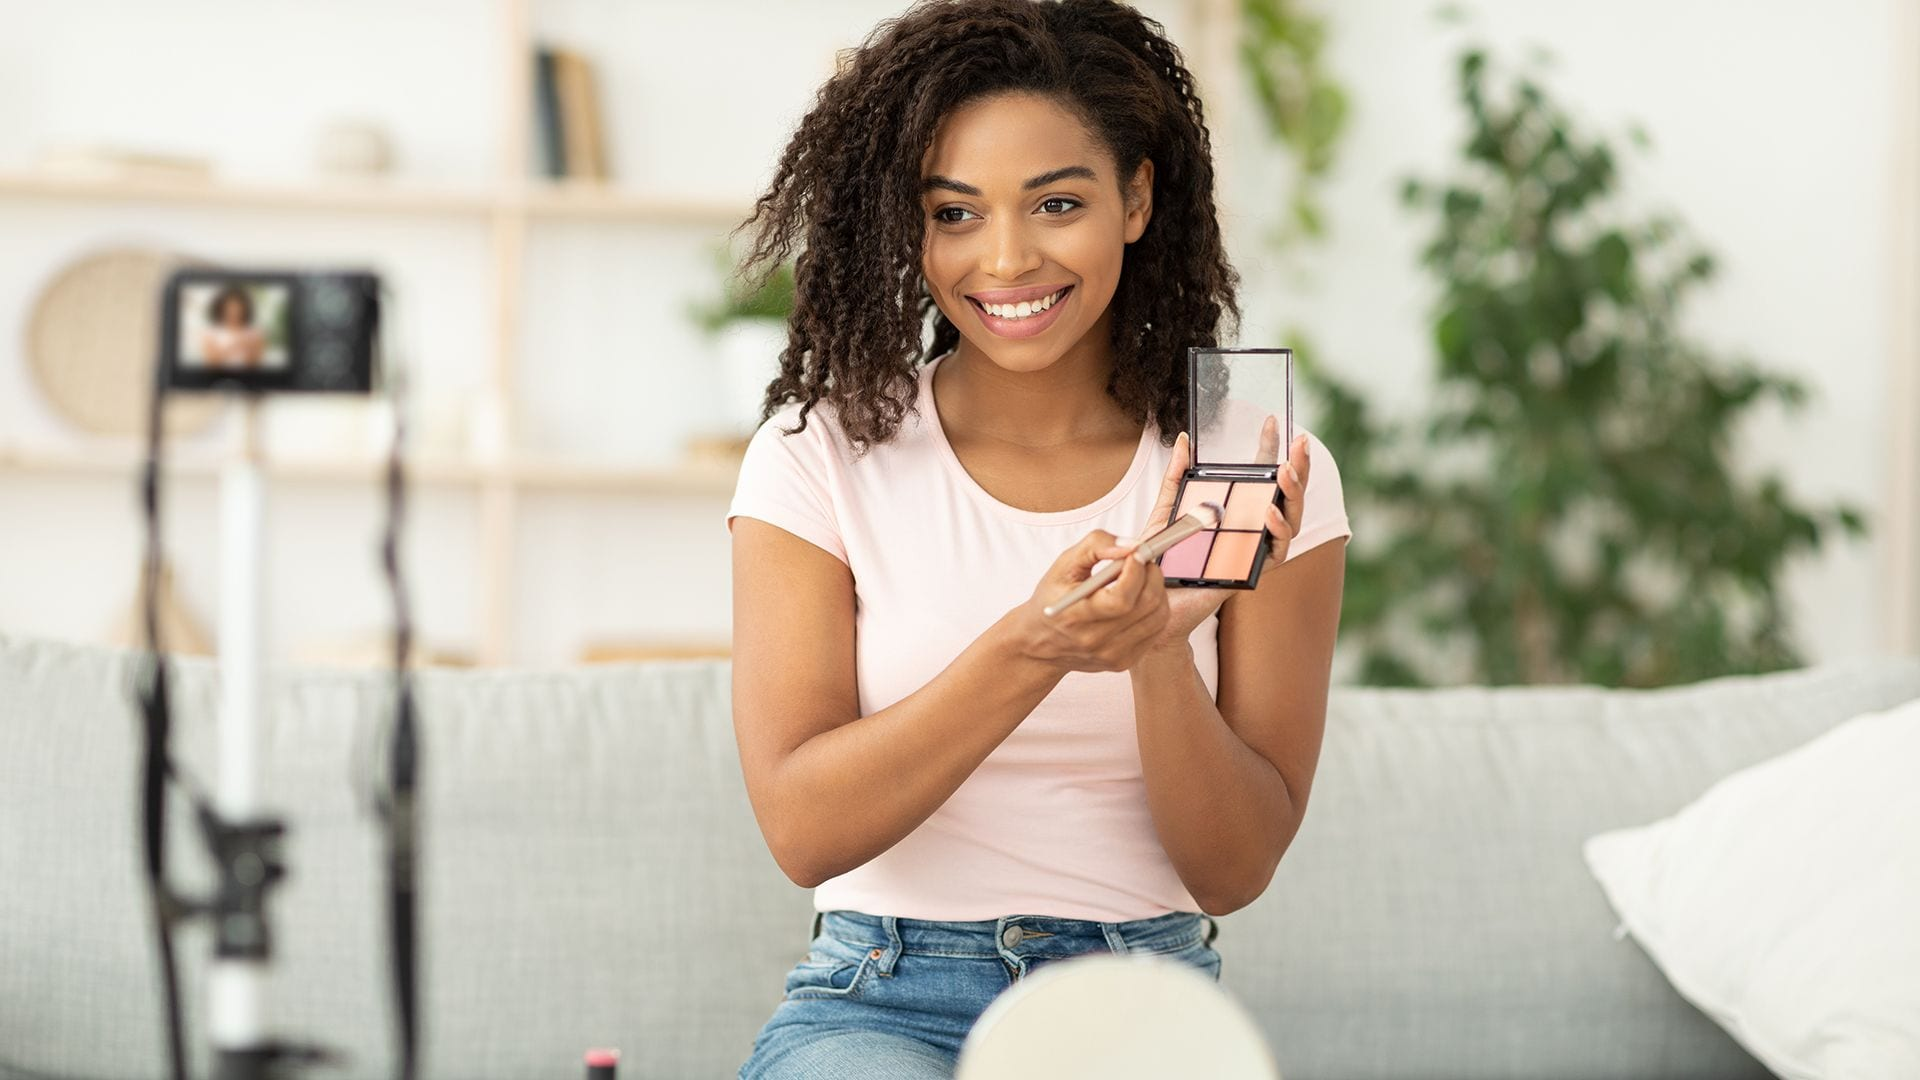 4 reasons why PR is crucial. Woman reviewing makeup that was sent to her by company to show that PR allows for direct contact with customers.